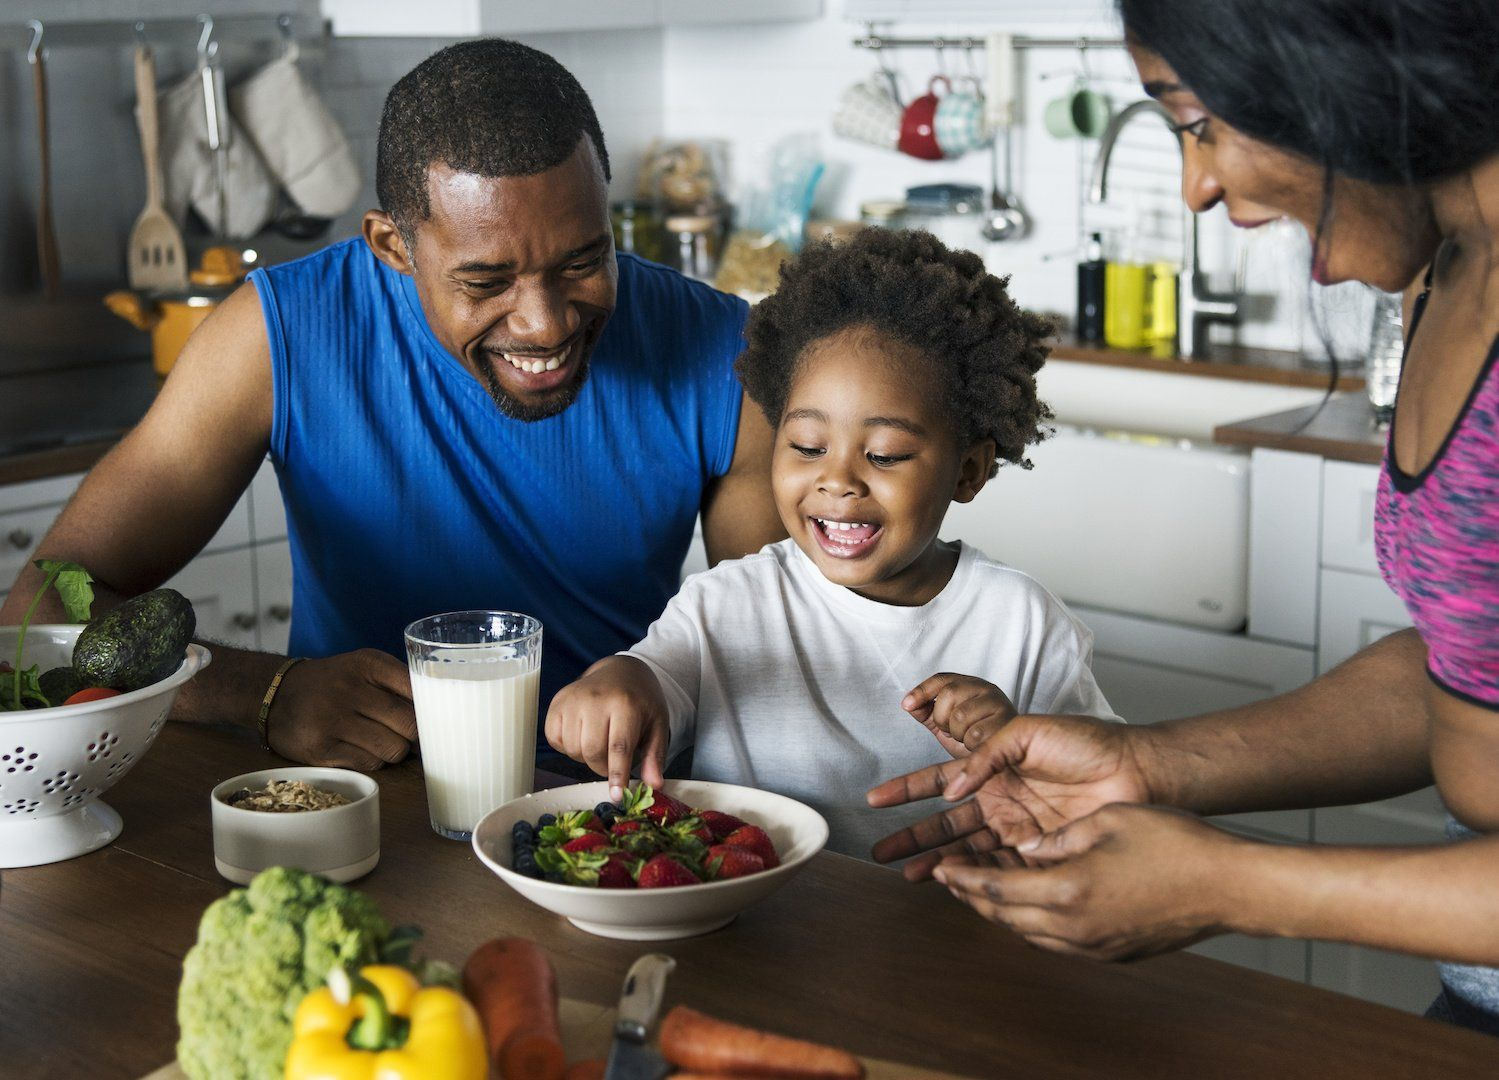 Daily breakfast may trump exercise for weight-loss